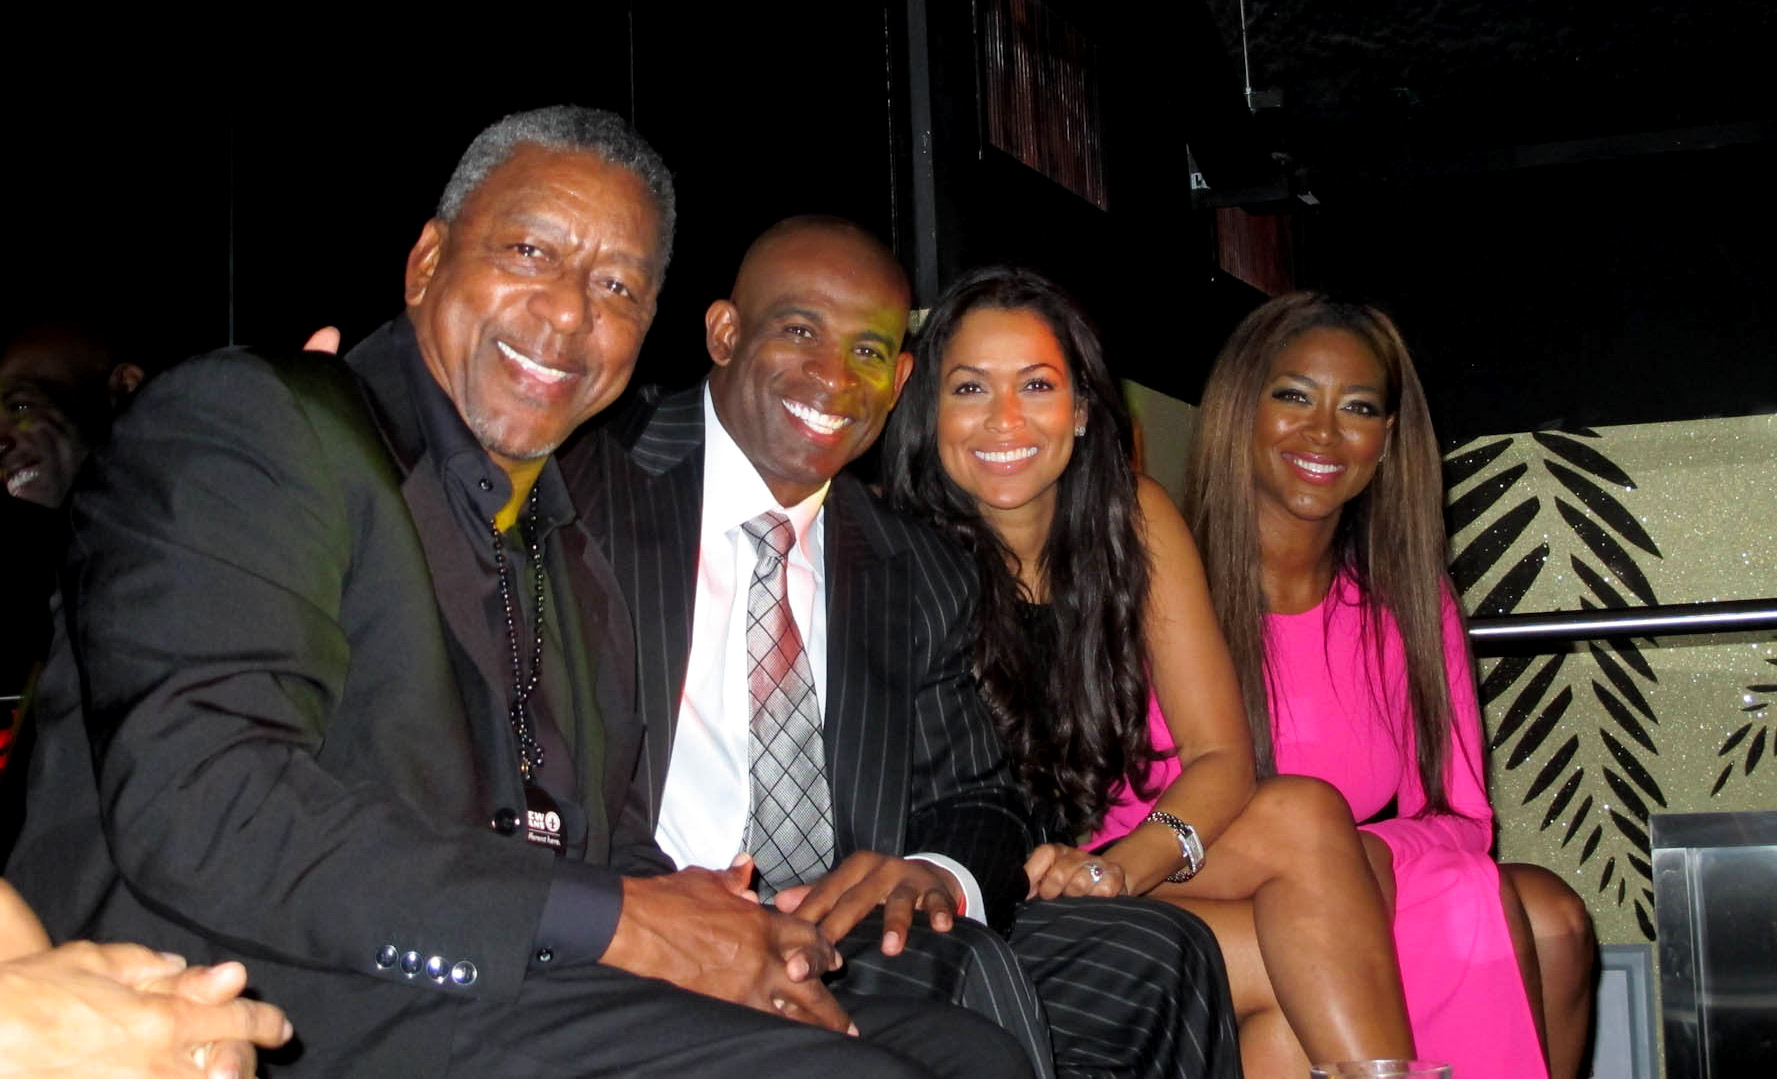 Pics Photos - Deion Sanders And Tracey Edmonds Spotted On The Red ...